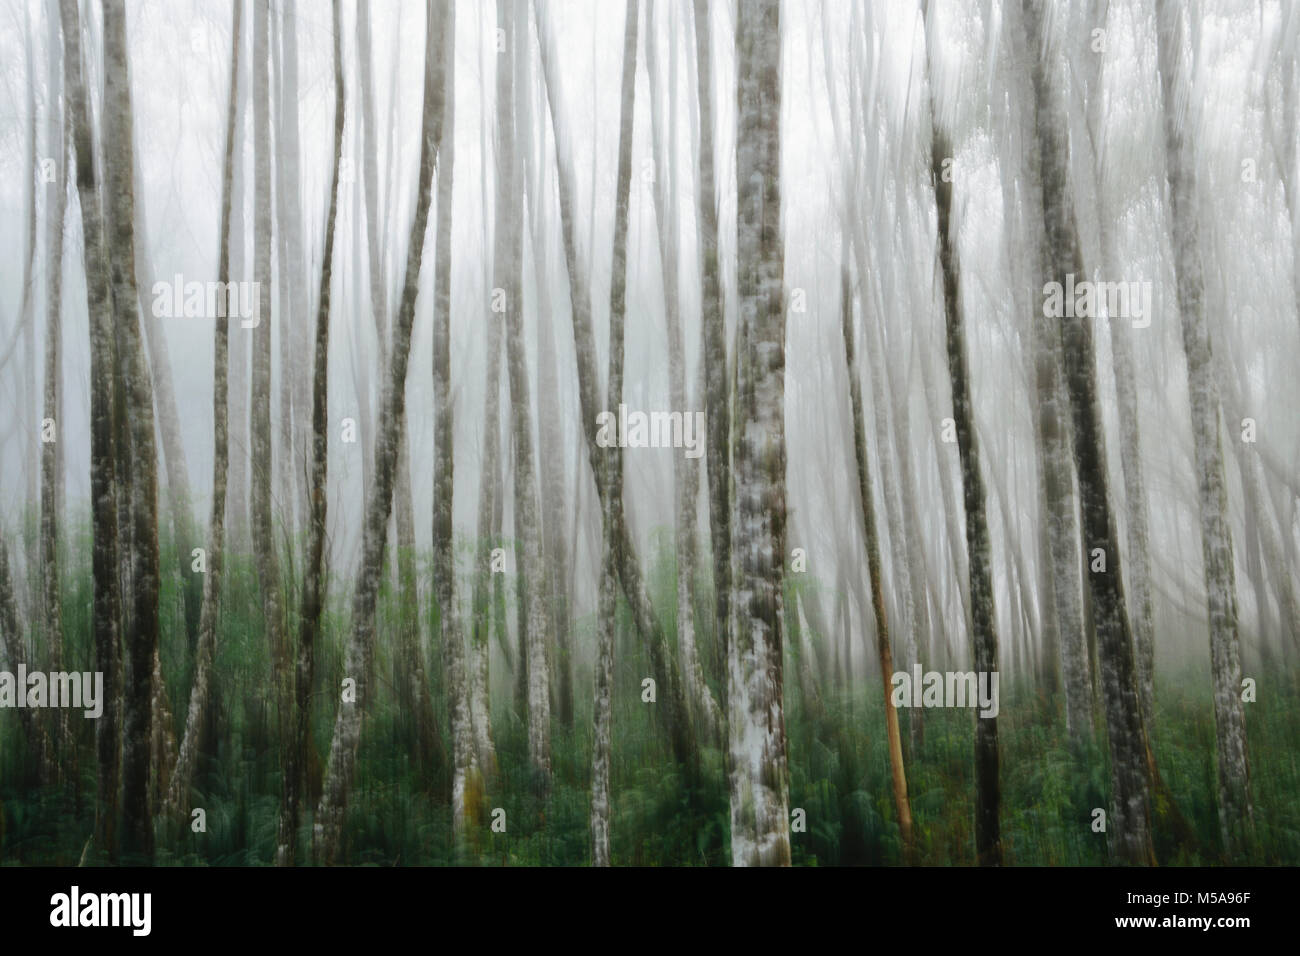 Dense woodland, alder trees with slim straight tree trunks in the mist. - Stock Image